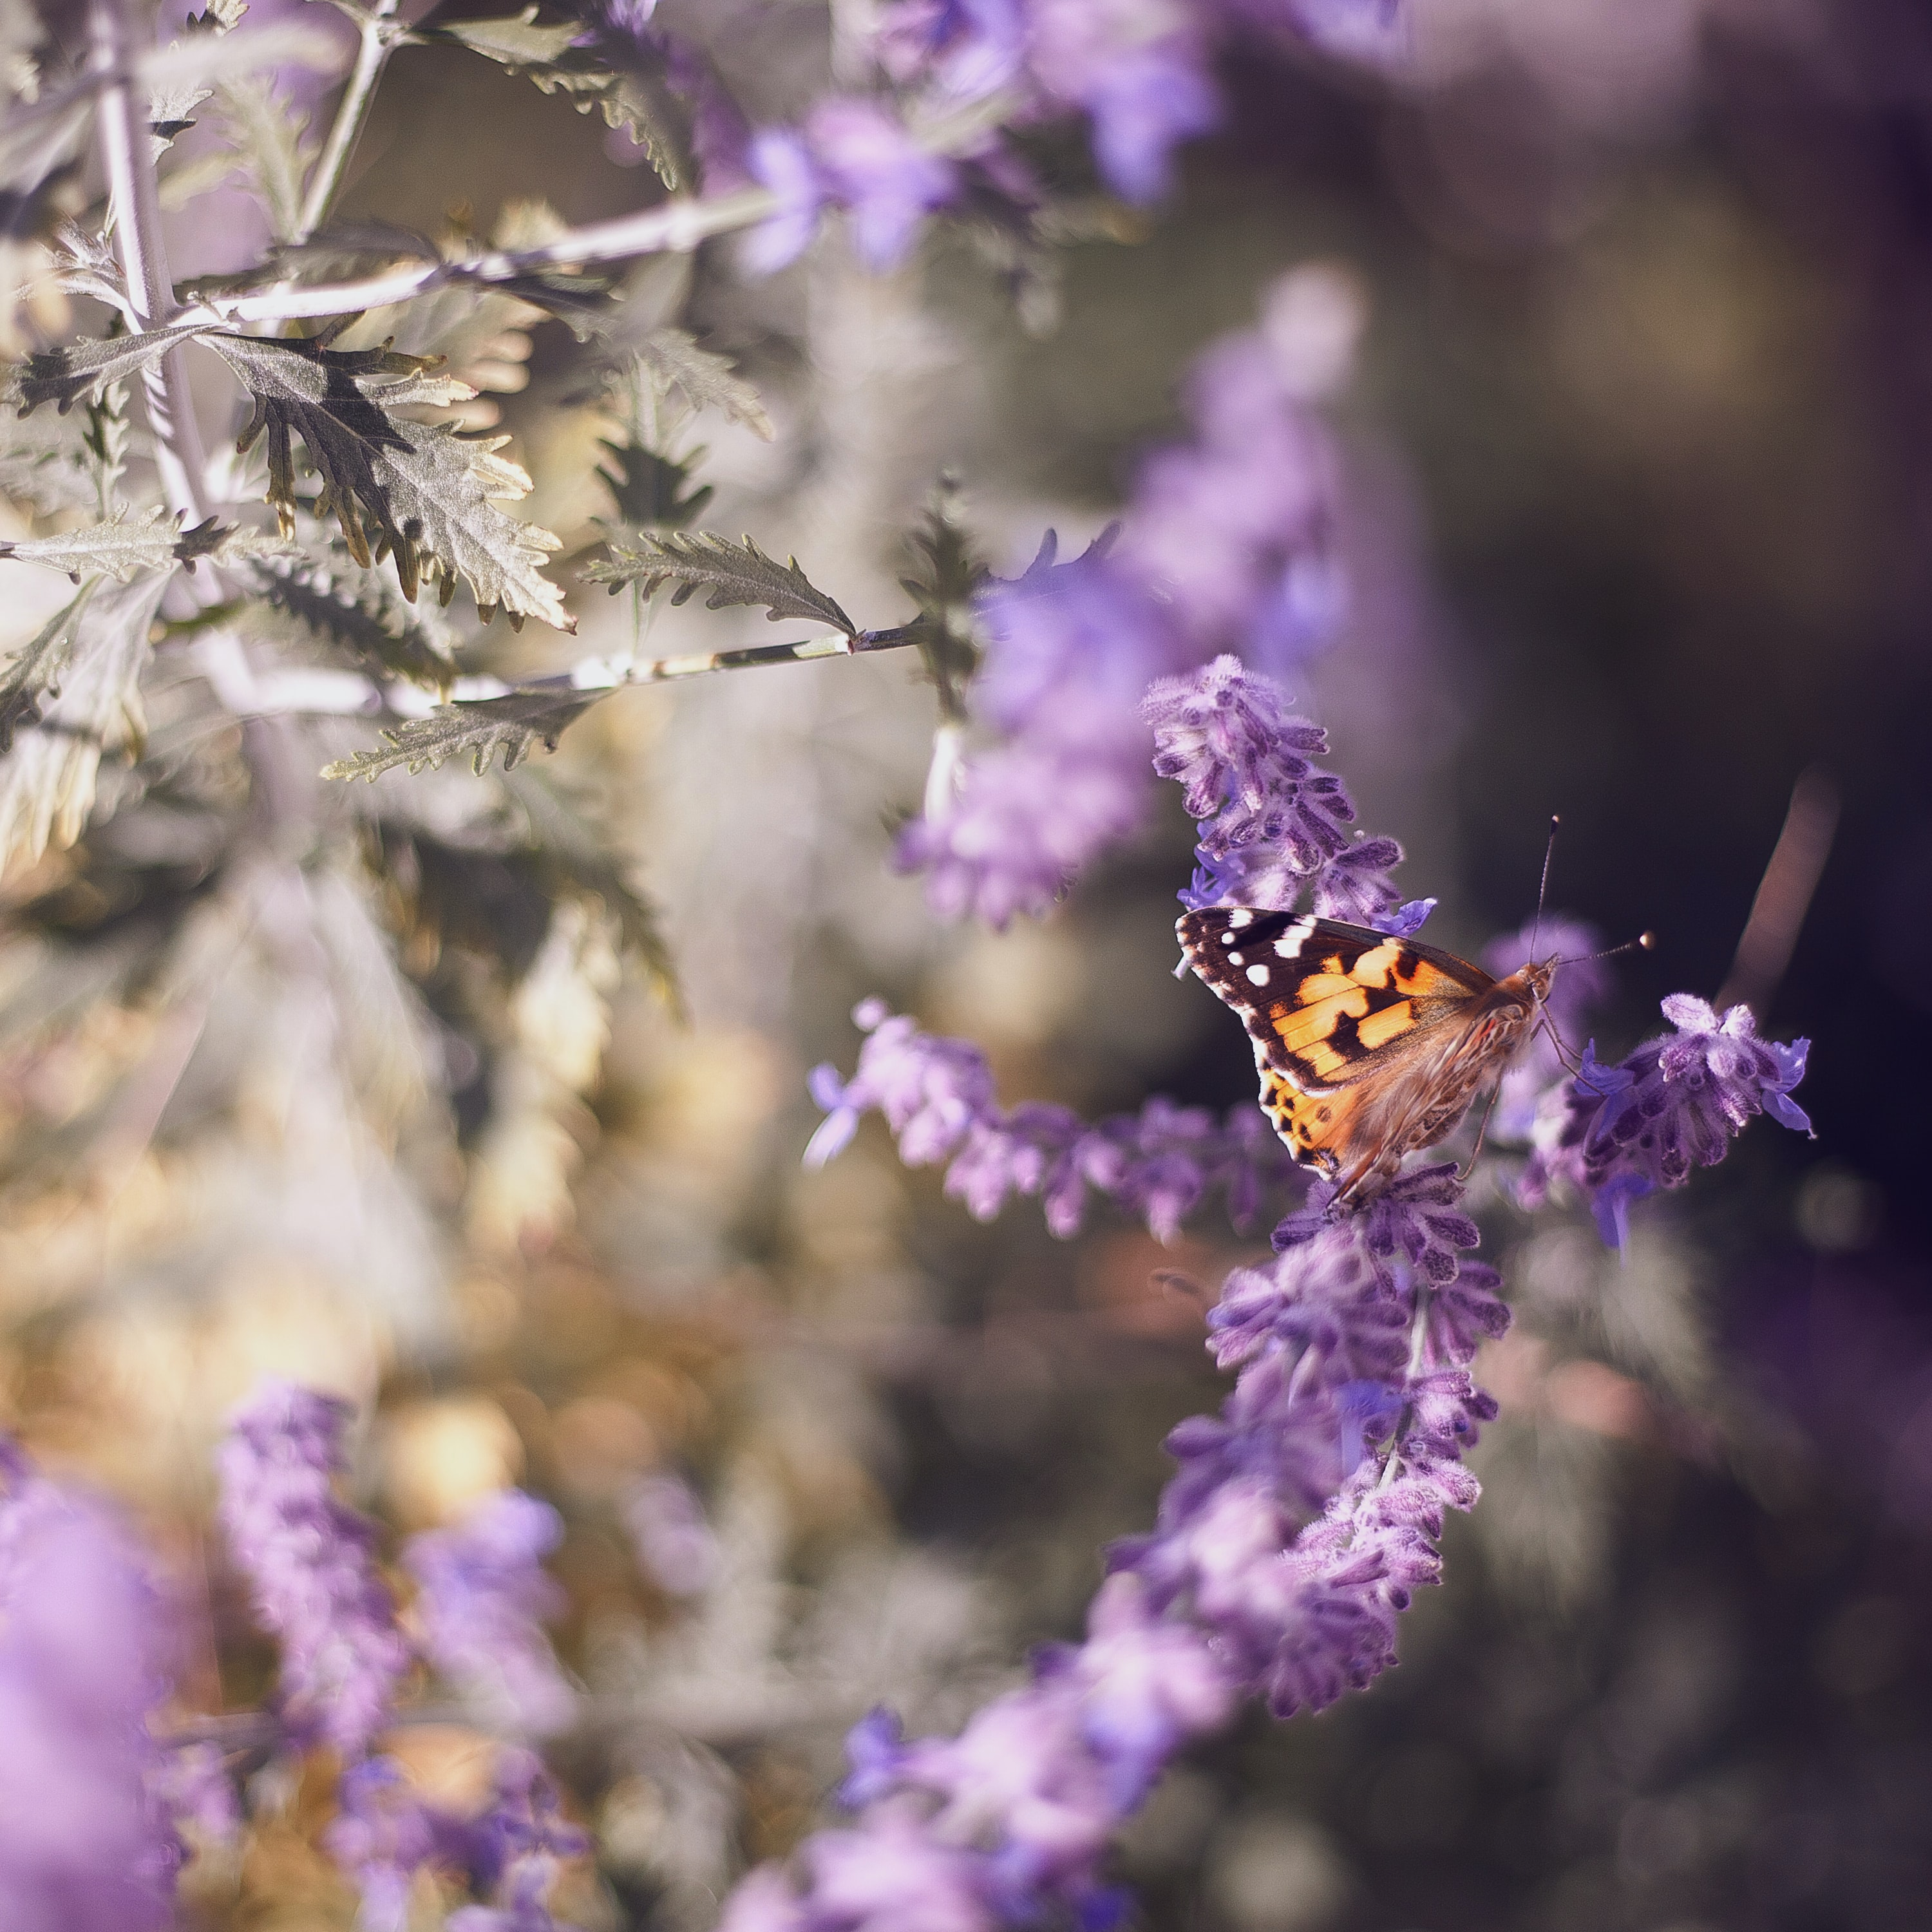 A monarch butterfly sitting on lavender flowers